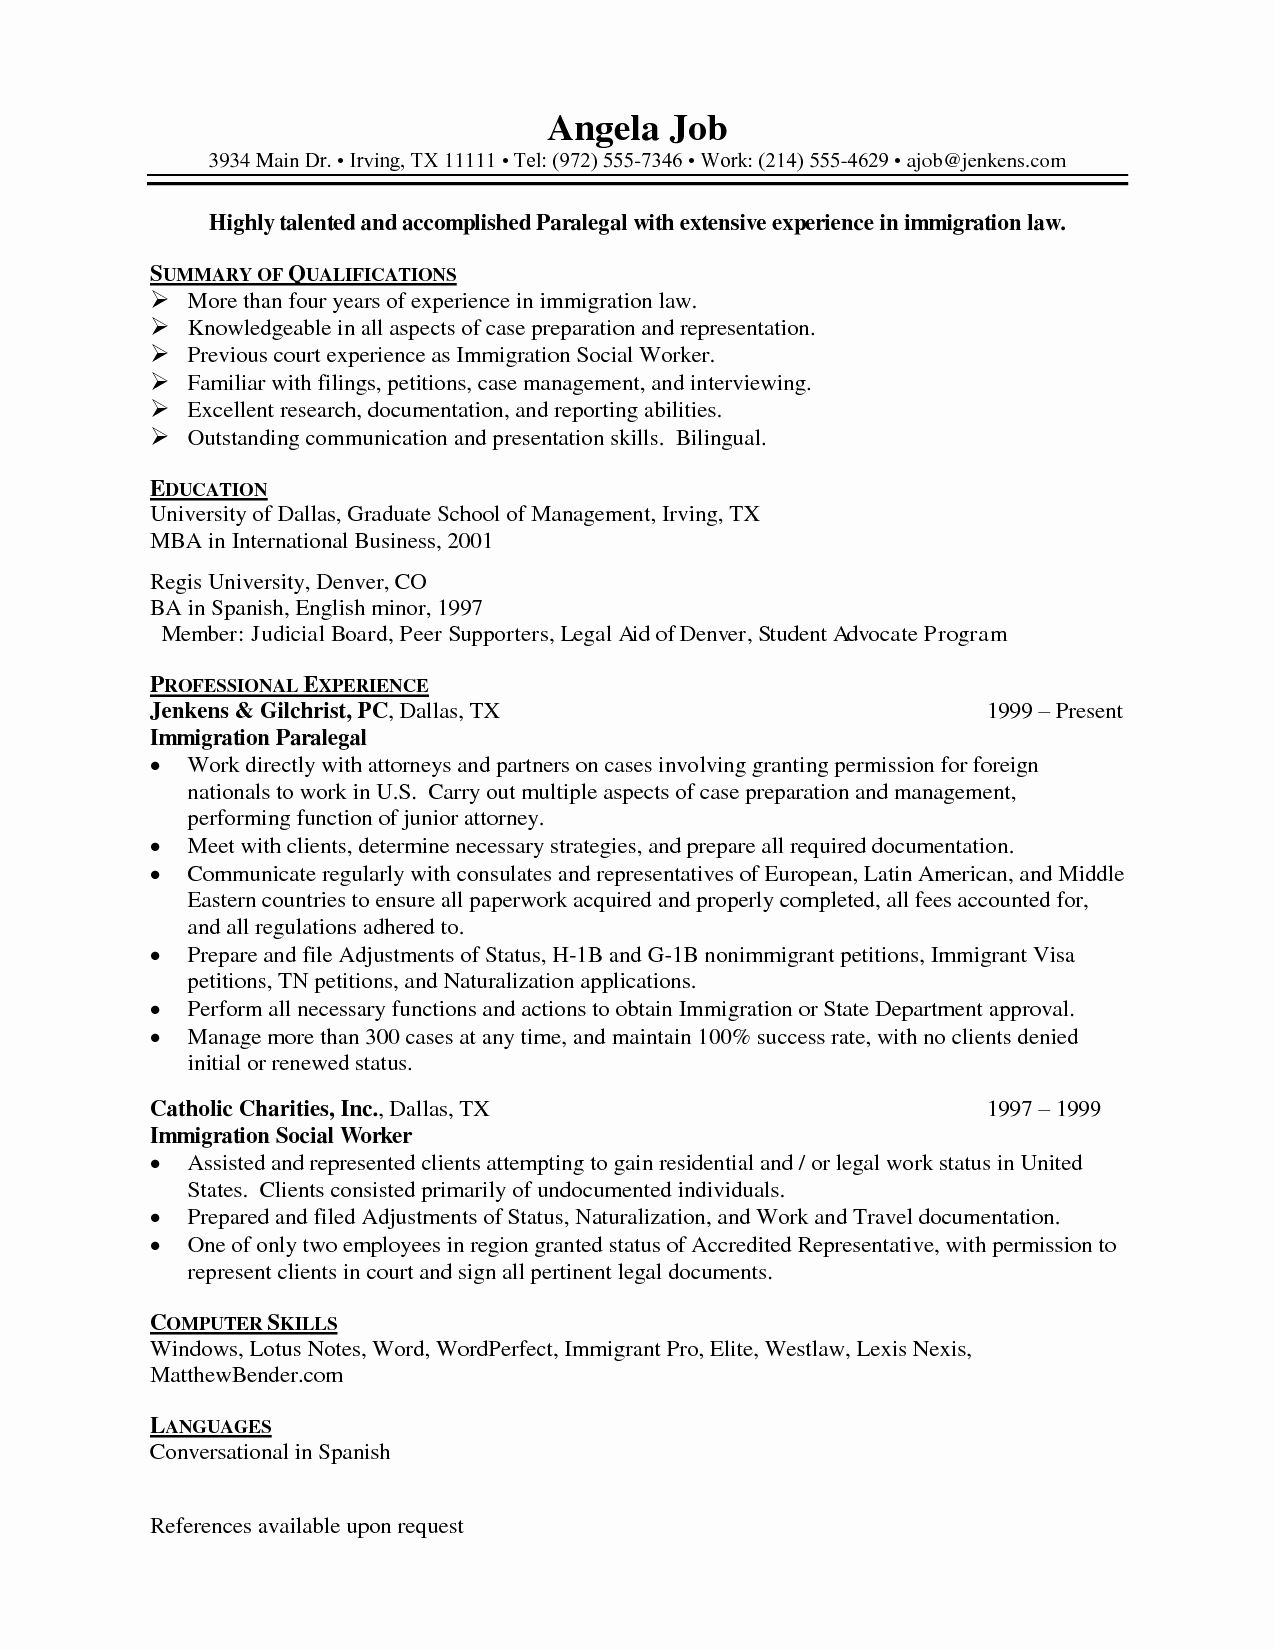 paralegal job description resume awesome best format for professionals and student Resume Immigration Paralegal Job Description Resume